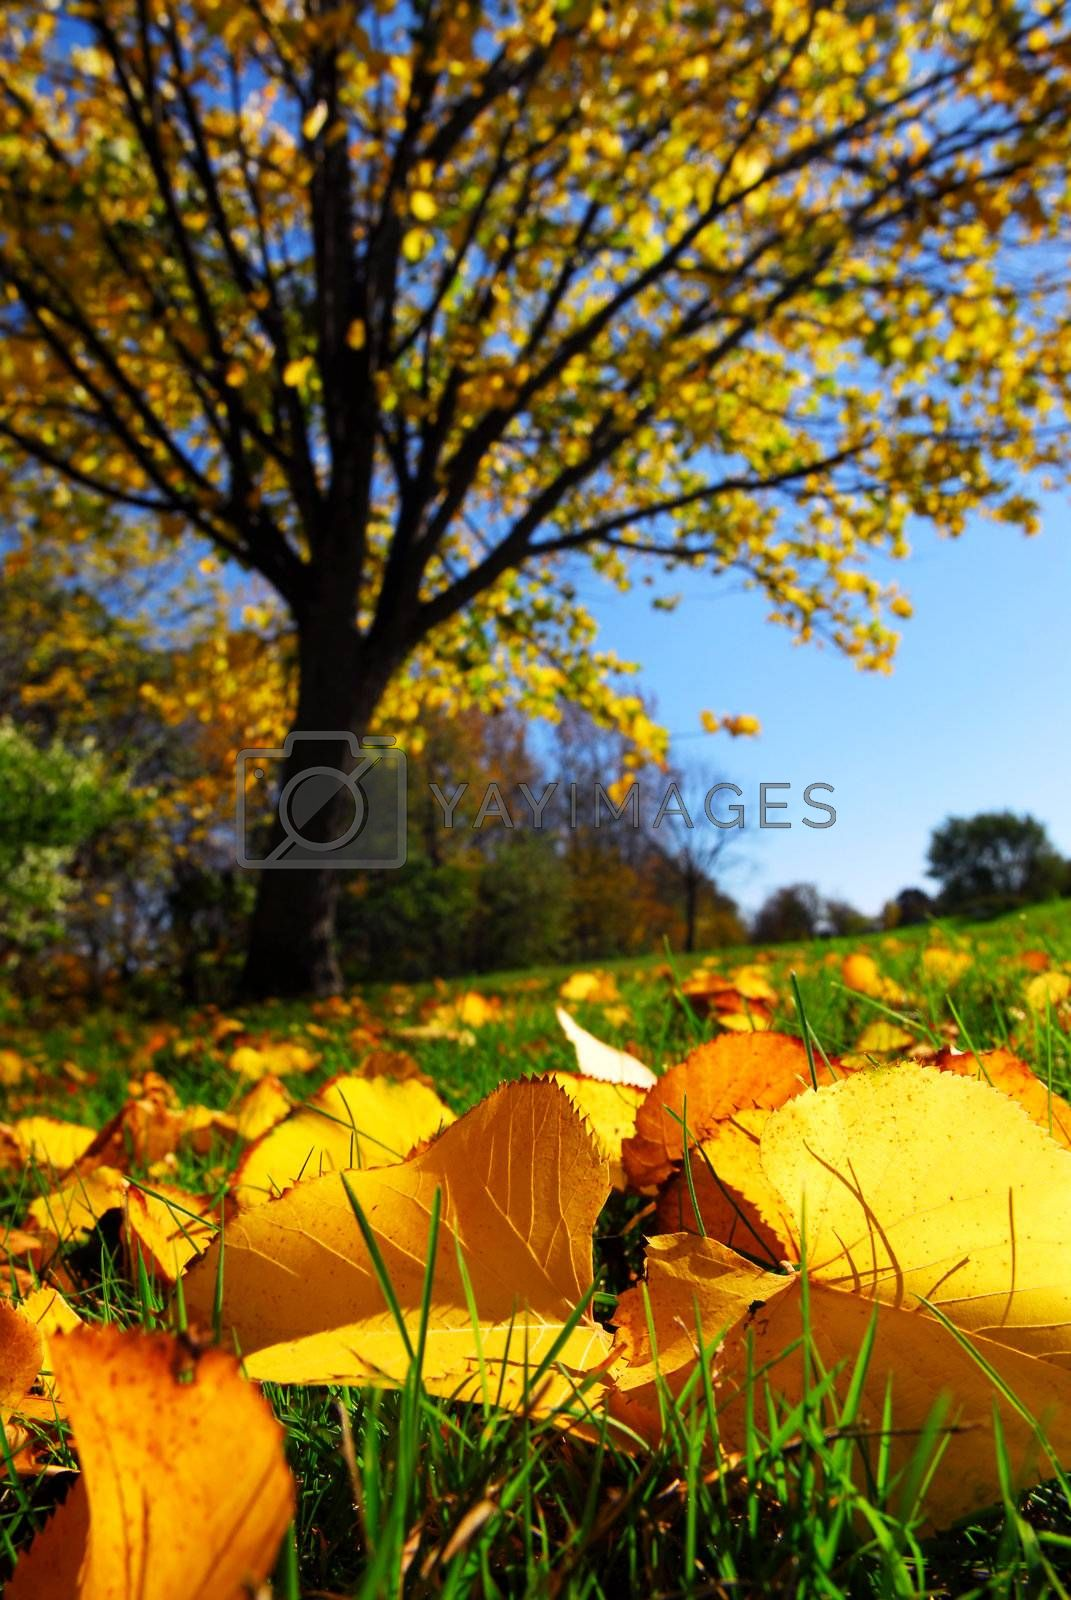 Fall landscape with autumn linden tree and golden leaves on the ground